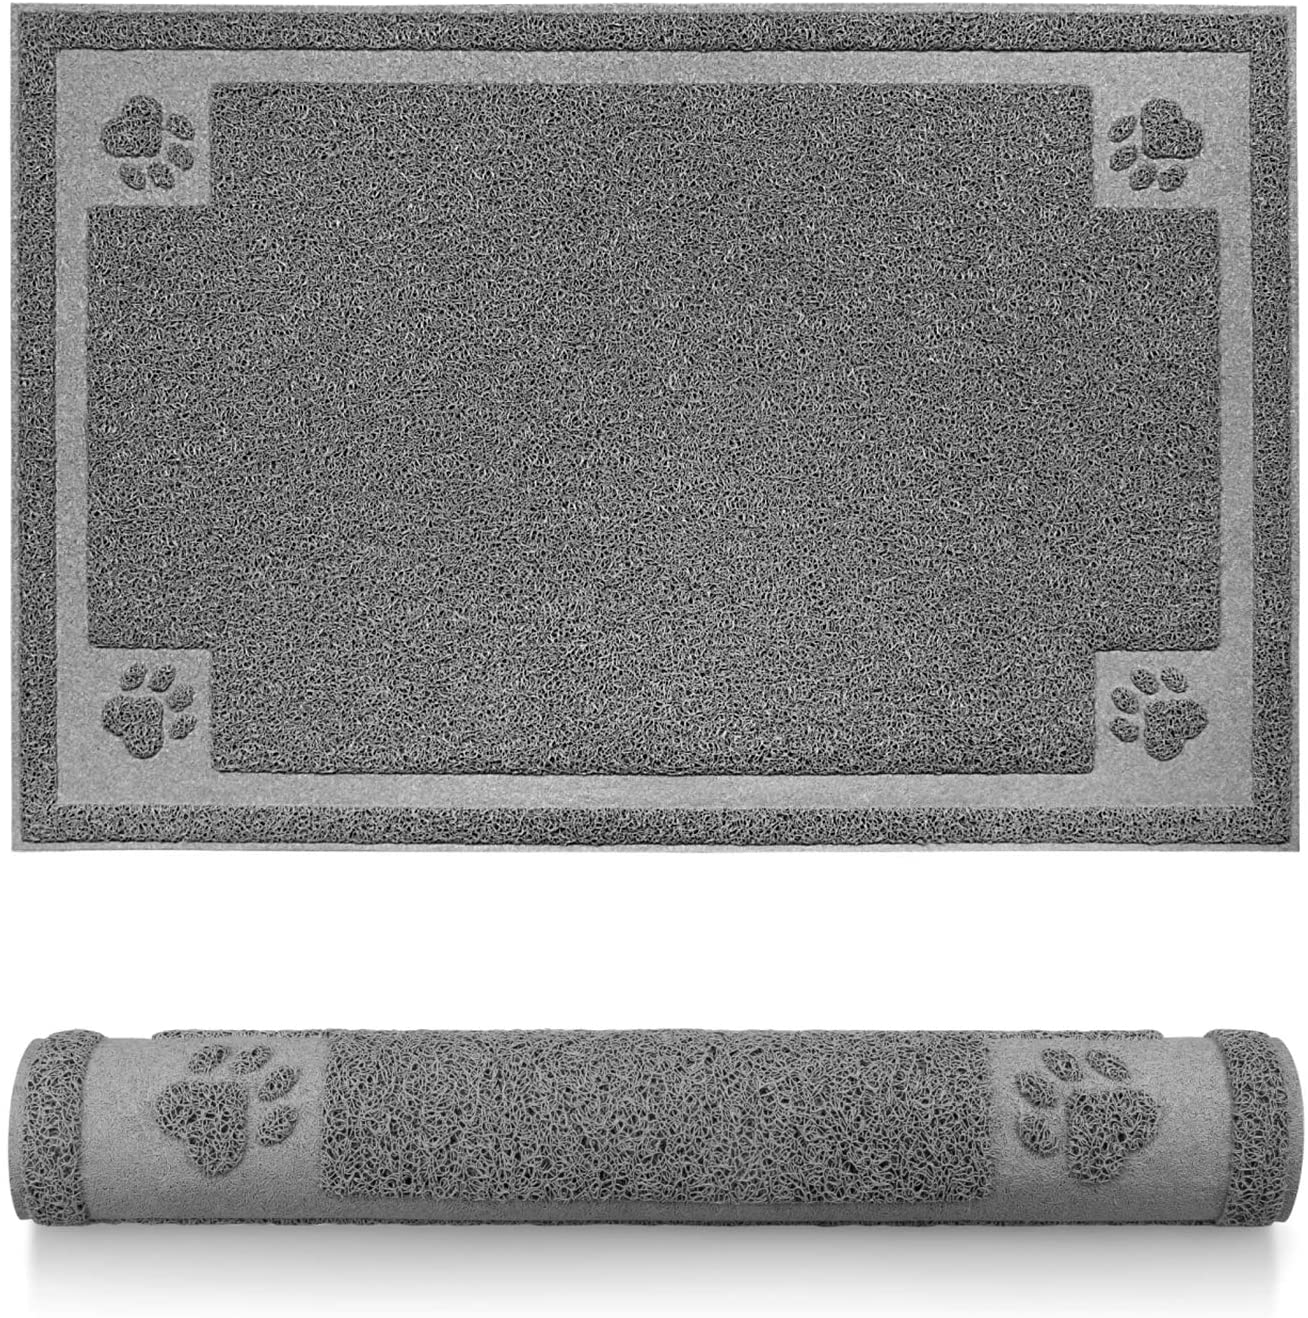 Pet Feeding Mat for Dogs and Cats Flexible and Waterproof Dog Bowl Mat for Food and Water, Easy to Clean Dog Food Mat with Non Slip Backing